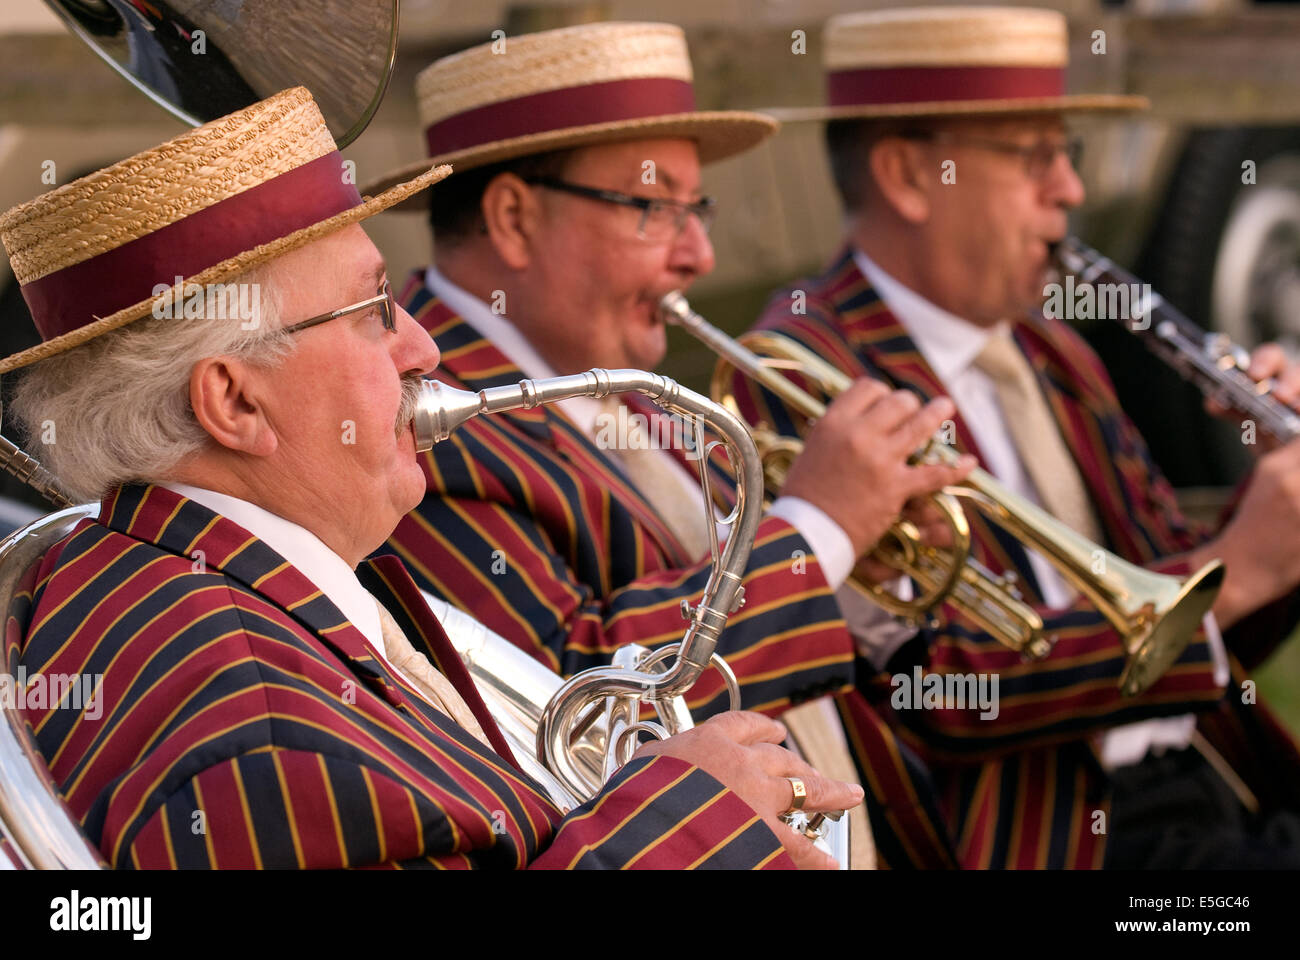 Jazz band entertaining the crowds at a fundraising event for local charities, Churt, near Farnham, Surrey, UK. - Stock Image